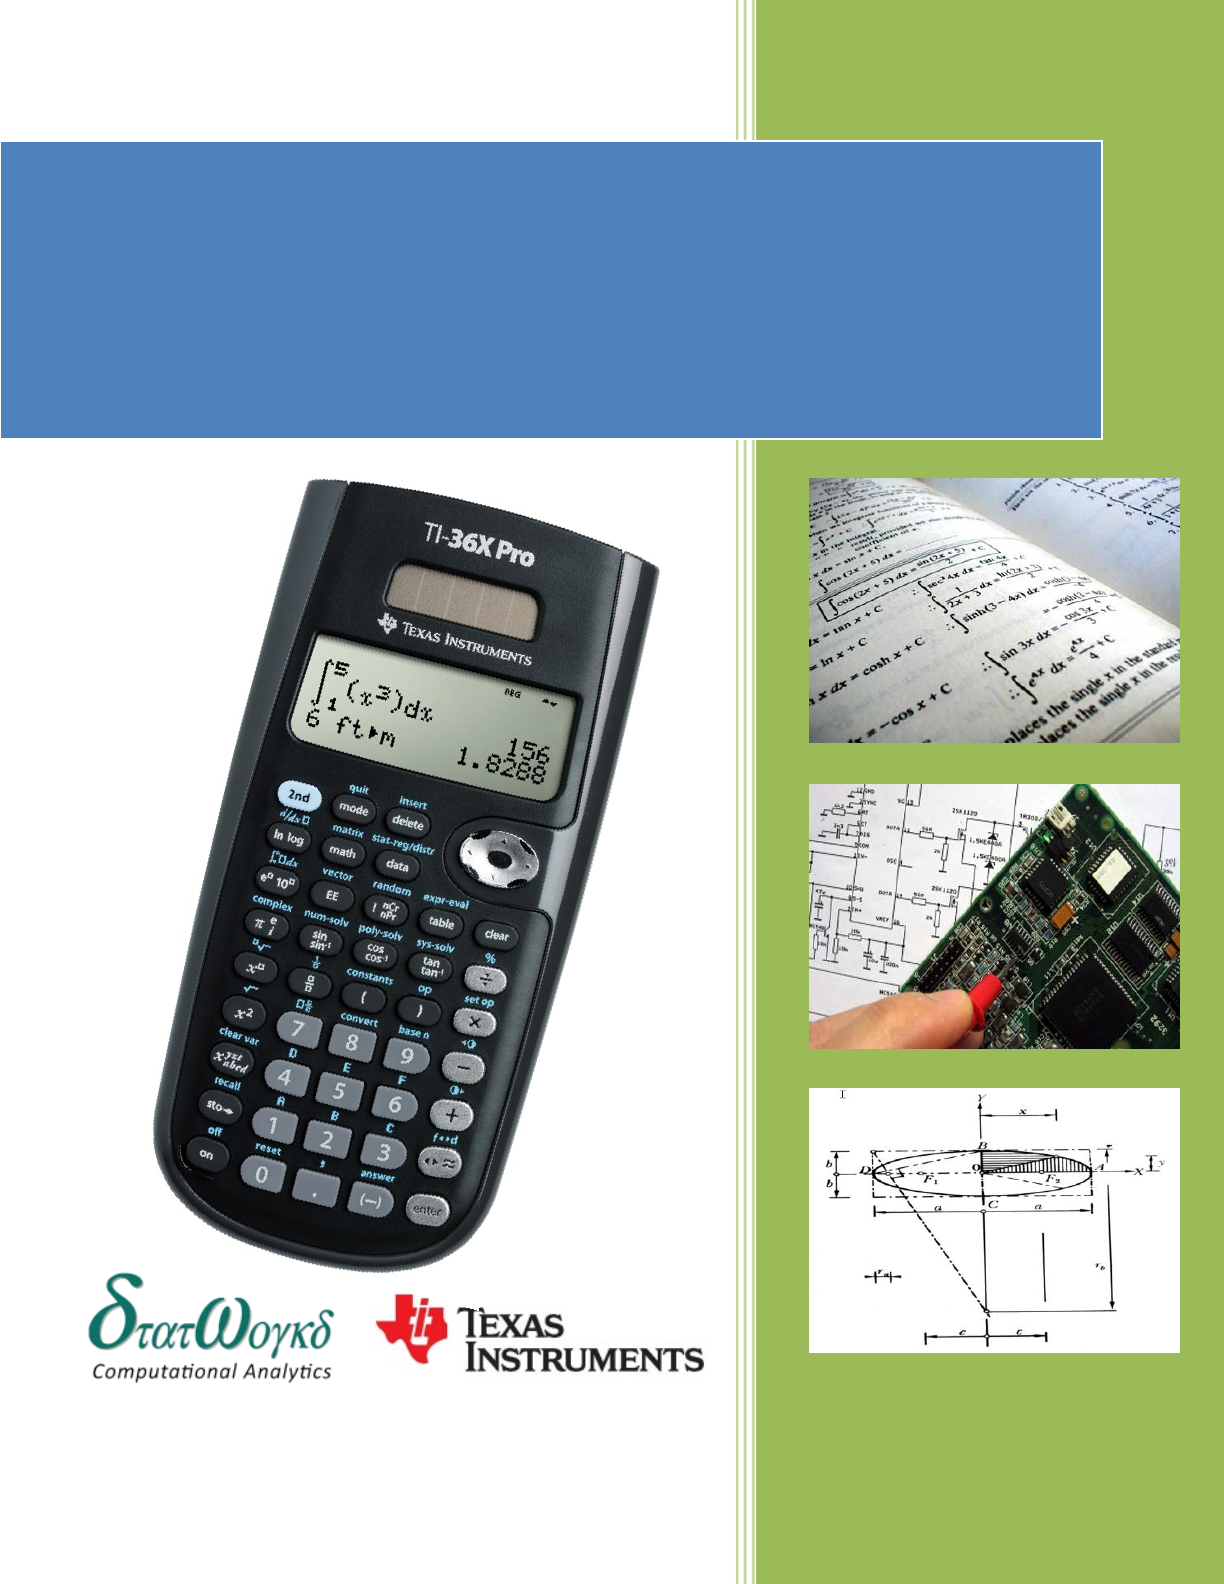 JBL Engineering Mathematics Made Easy With TI 36X Pro (All